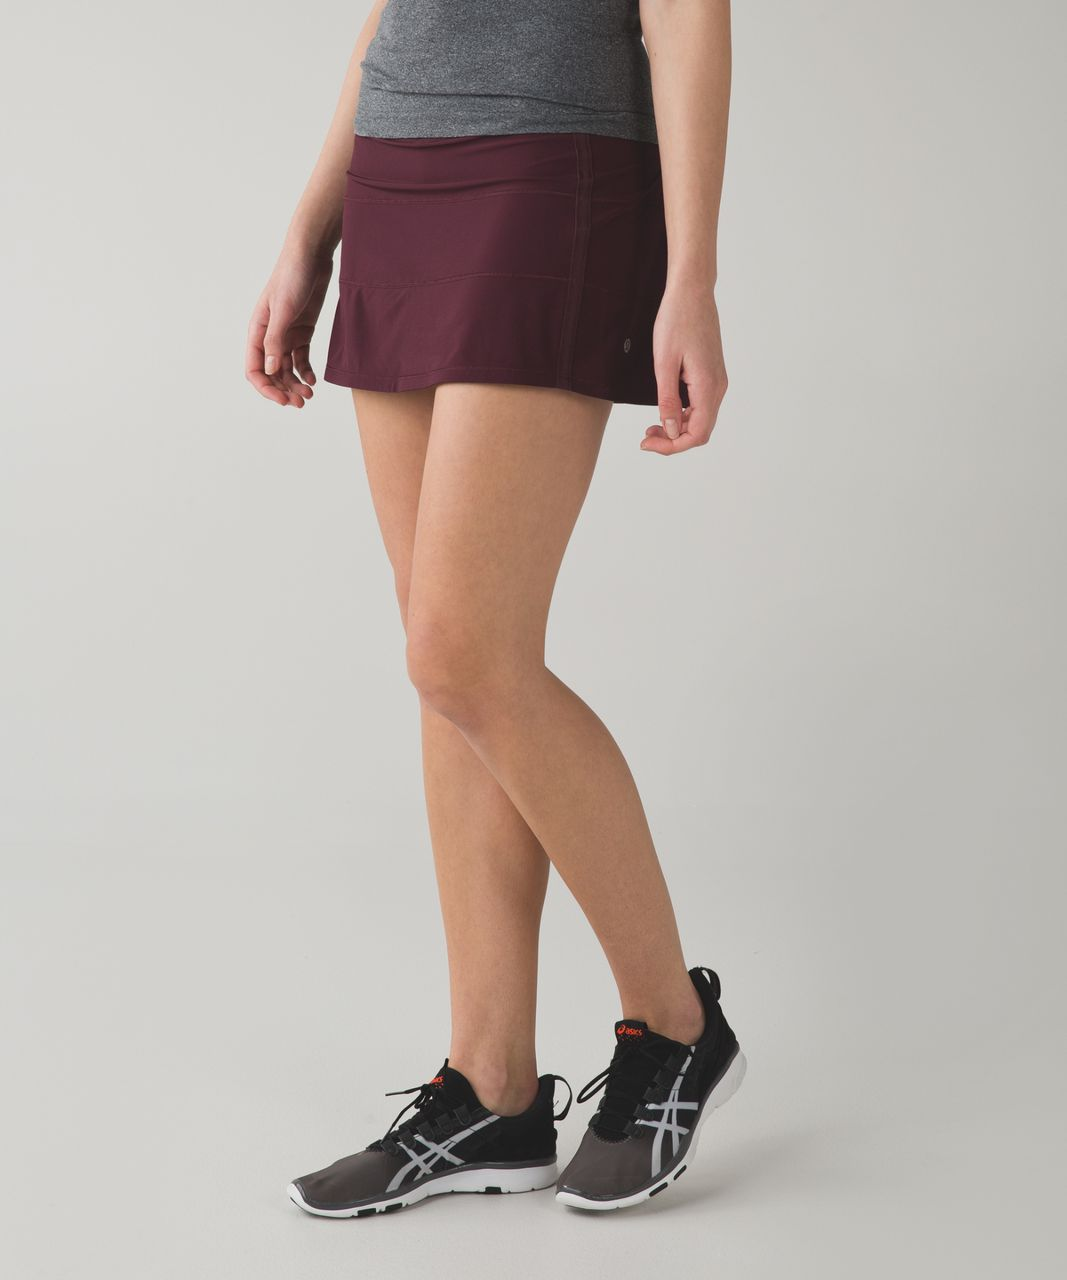 Lululemon Pace Rival Skirt II (Tall) *4-way Stretch - Bordeaux Drama / Space Dye Twist Naval Blue Very Light Flare